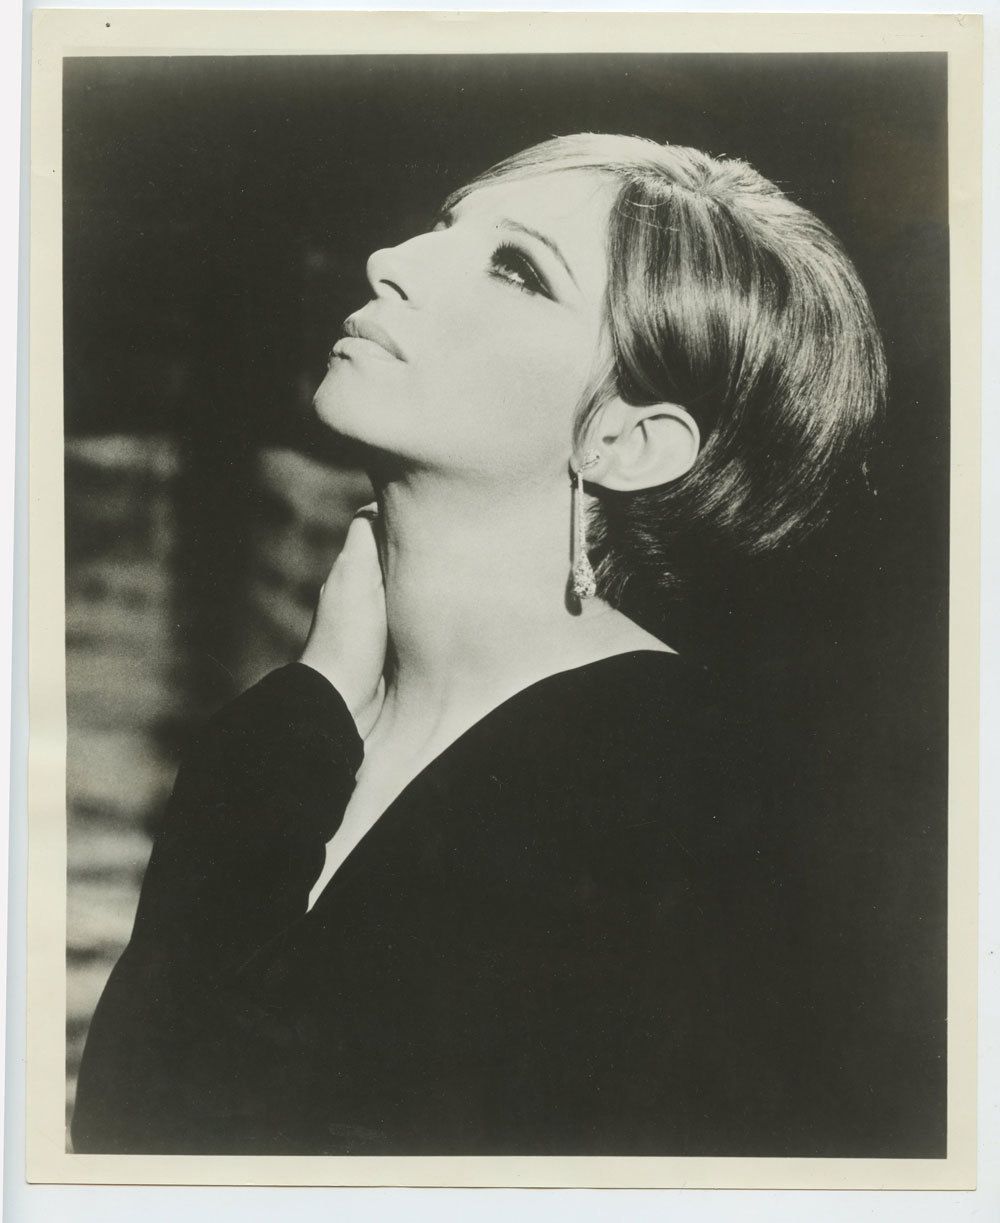 Barbra Streisand Photo 1968 Funny Girl Publicity Portrait